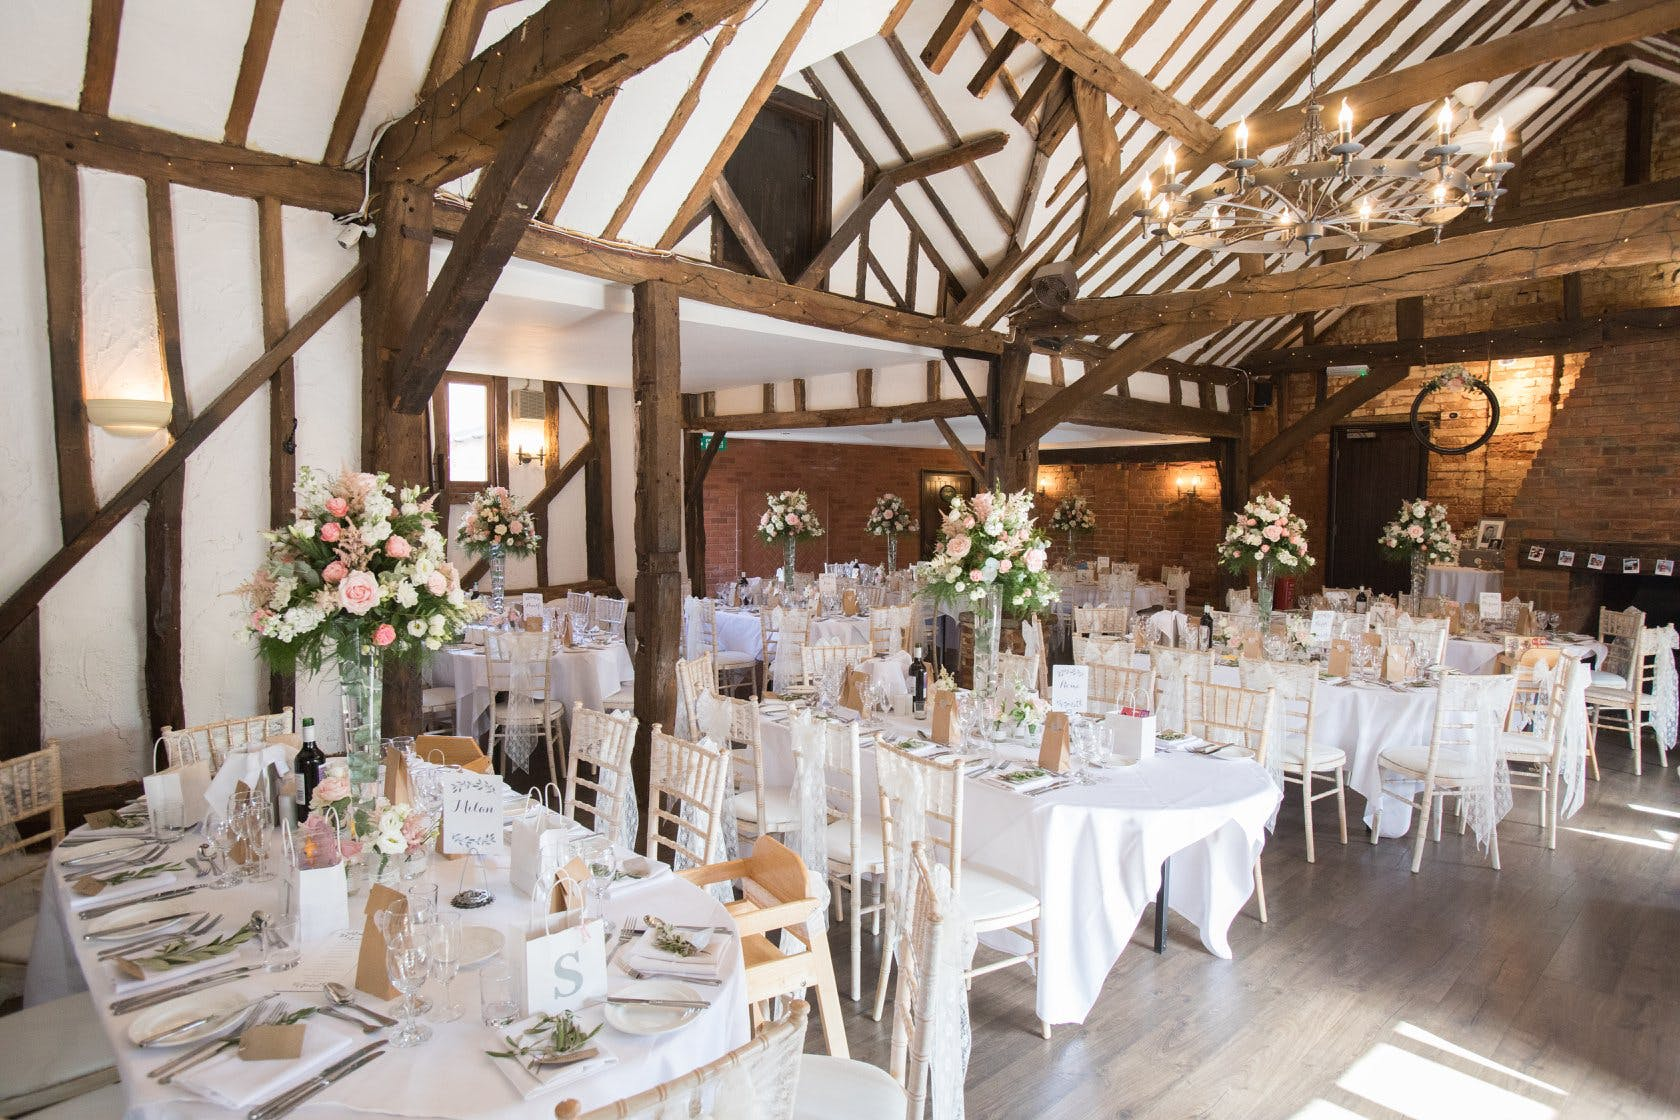 Barn wedding venue Berkshire